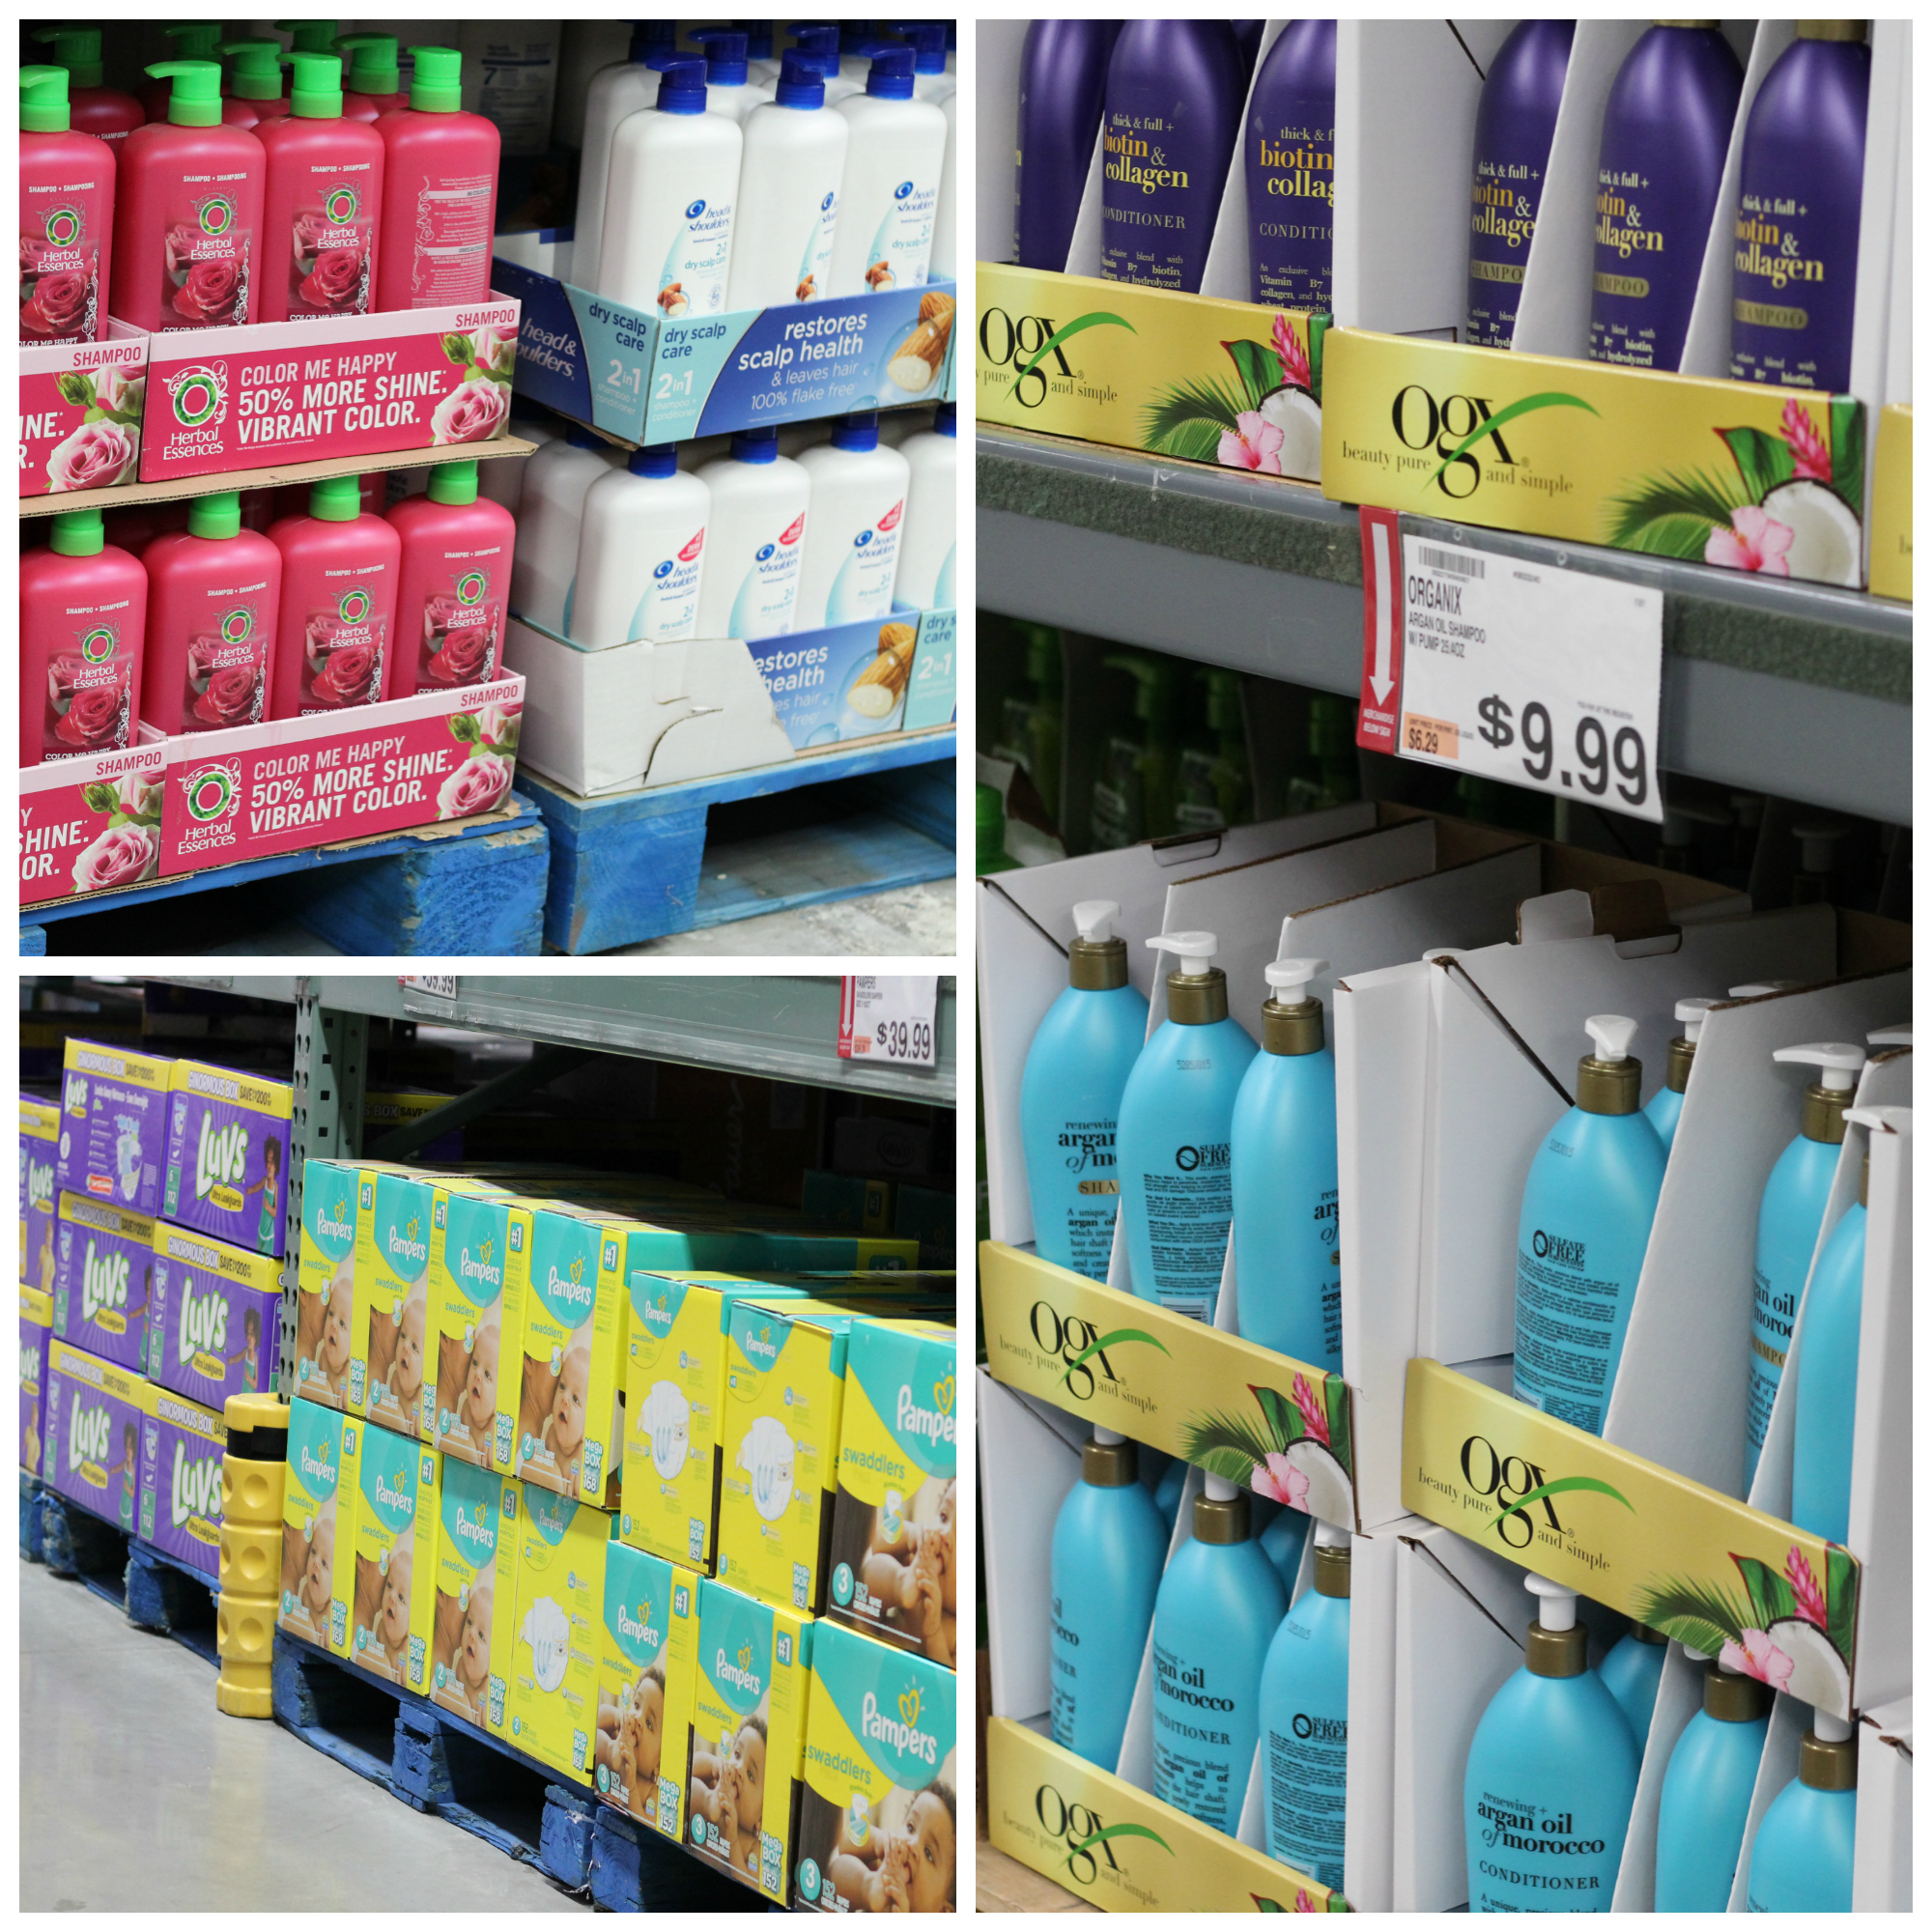 BJs Wholesale Club - Health and Beauty Items